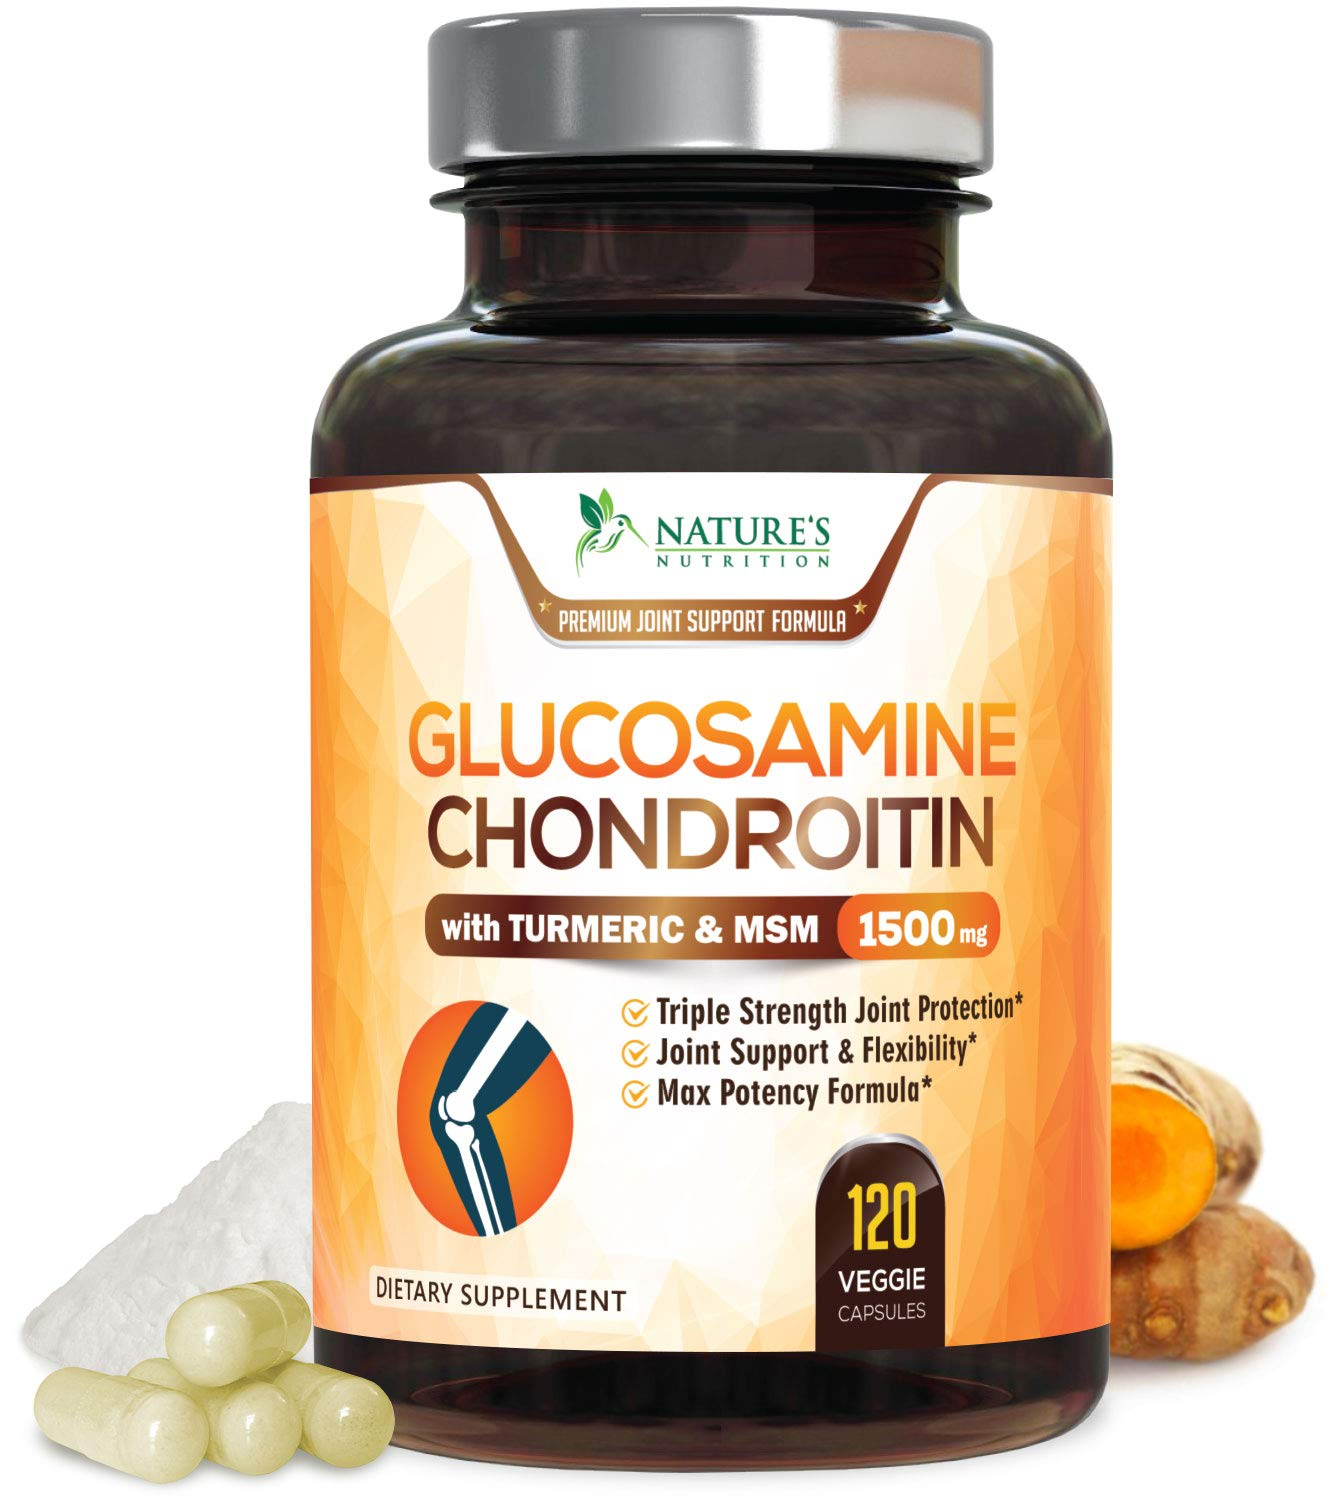 Glucosamine Chondroitin with Turmeric MSM Boswellia Non-GMO and Gluten Free Natural Joint Pain Relief Supplements for Men and Women Anti-Inflammatory 90 Capsules Cartilage Building